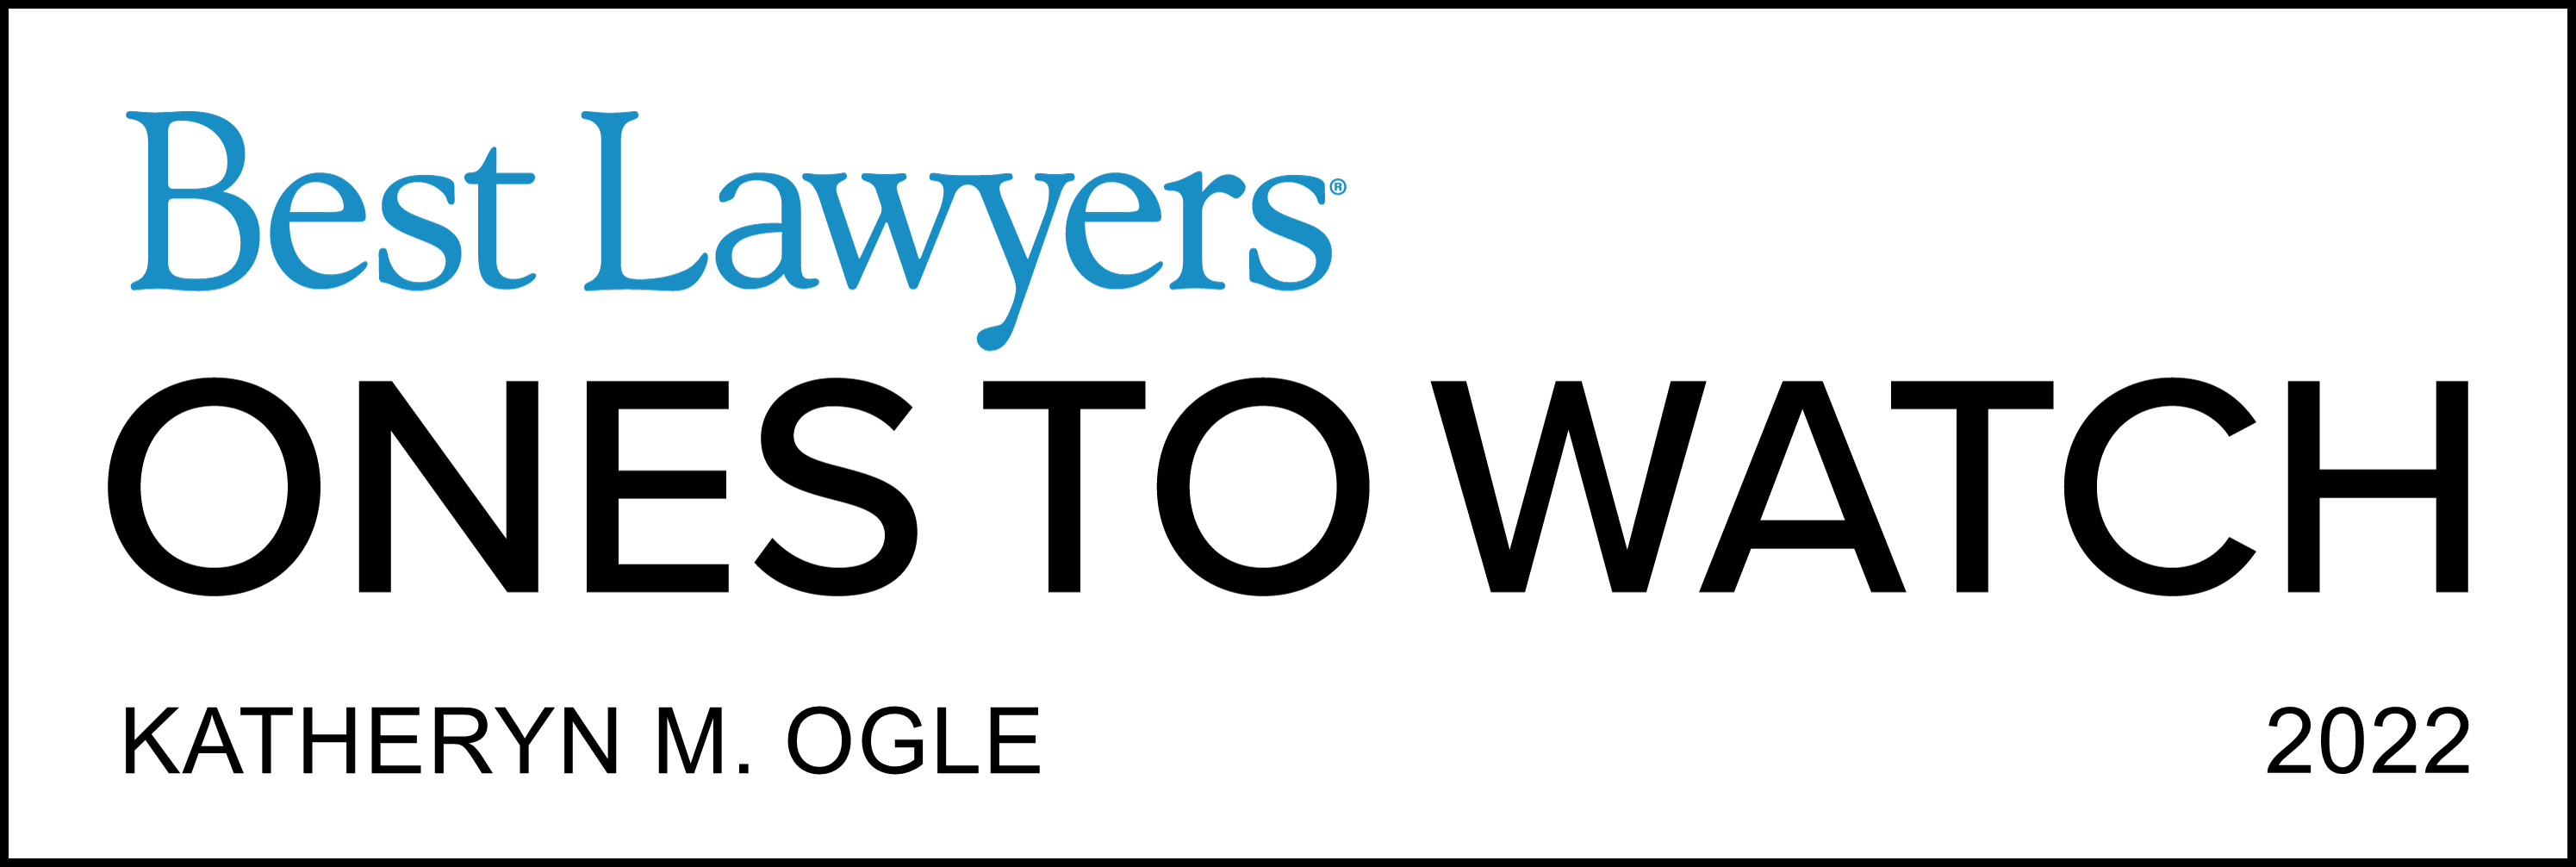 MLT's Attorney Katheryn Ogle was selected by bestlawyer.com for 2022 Ones To Watch in DUI/DWI Defense and Family Law.